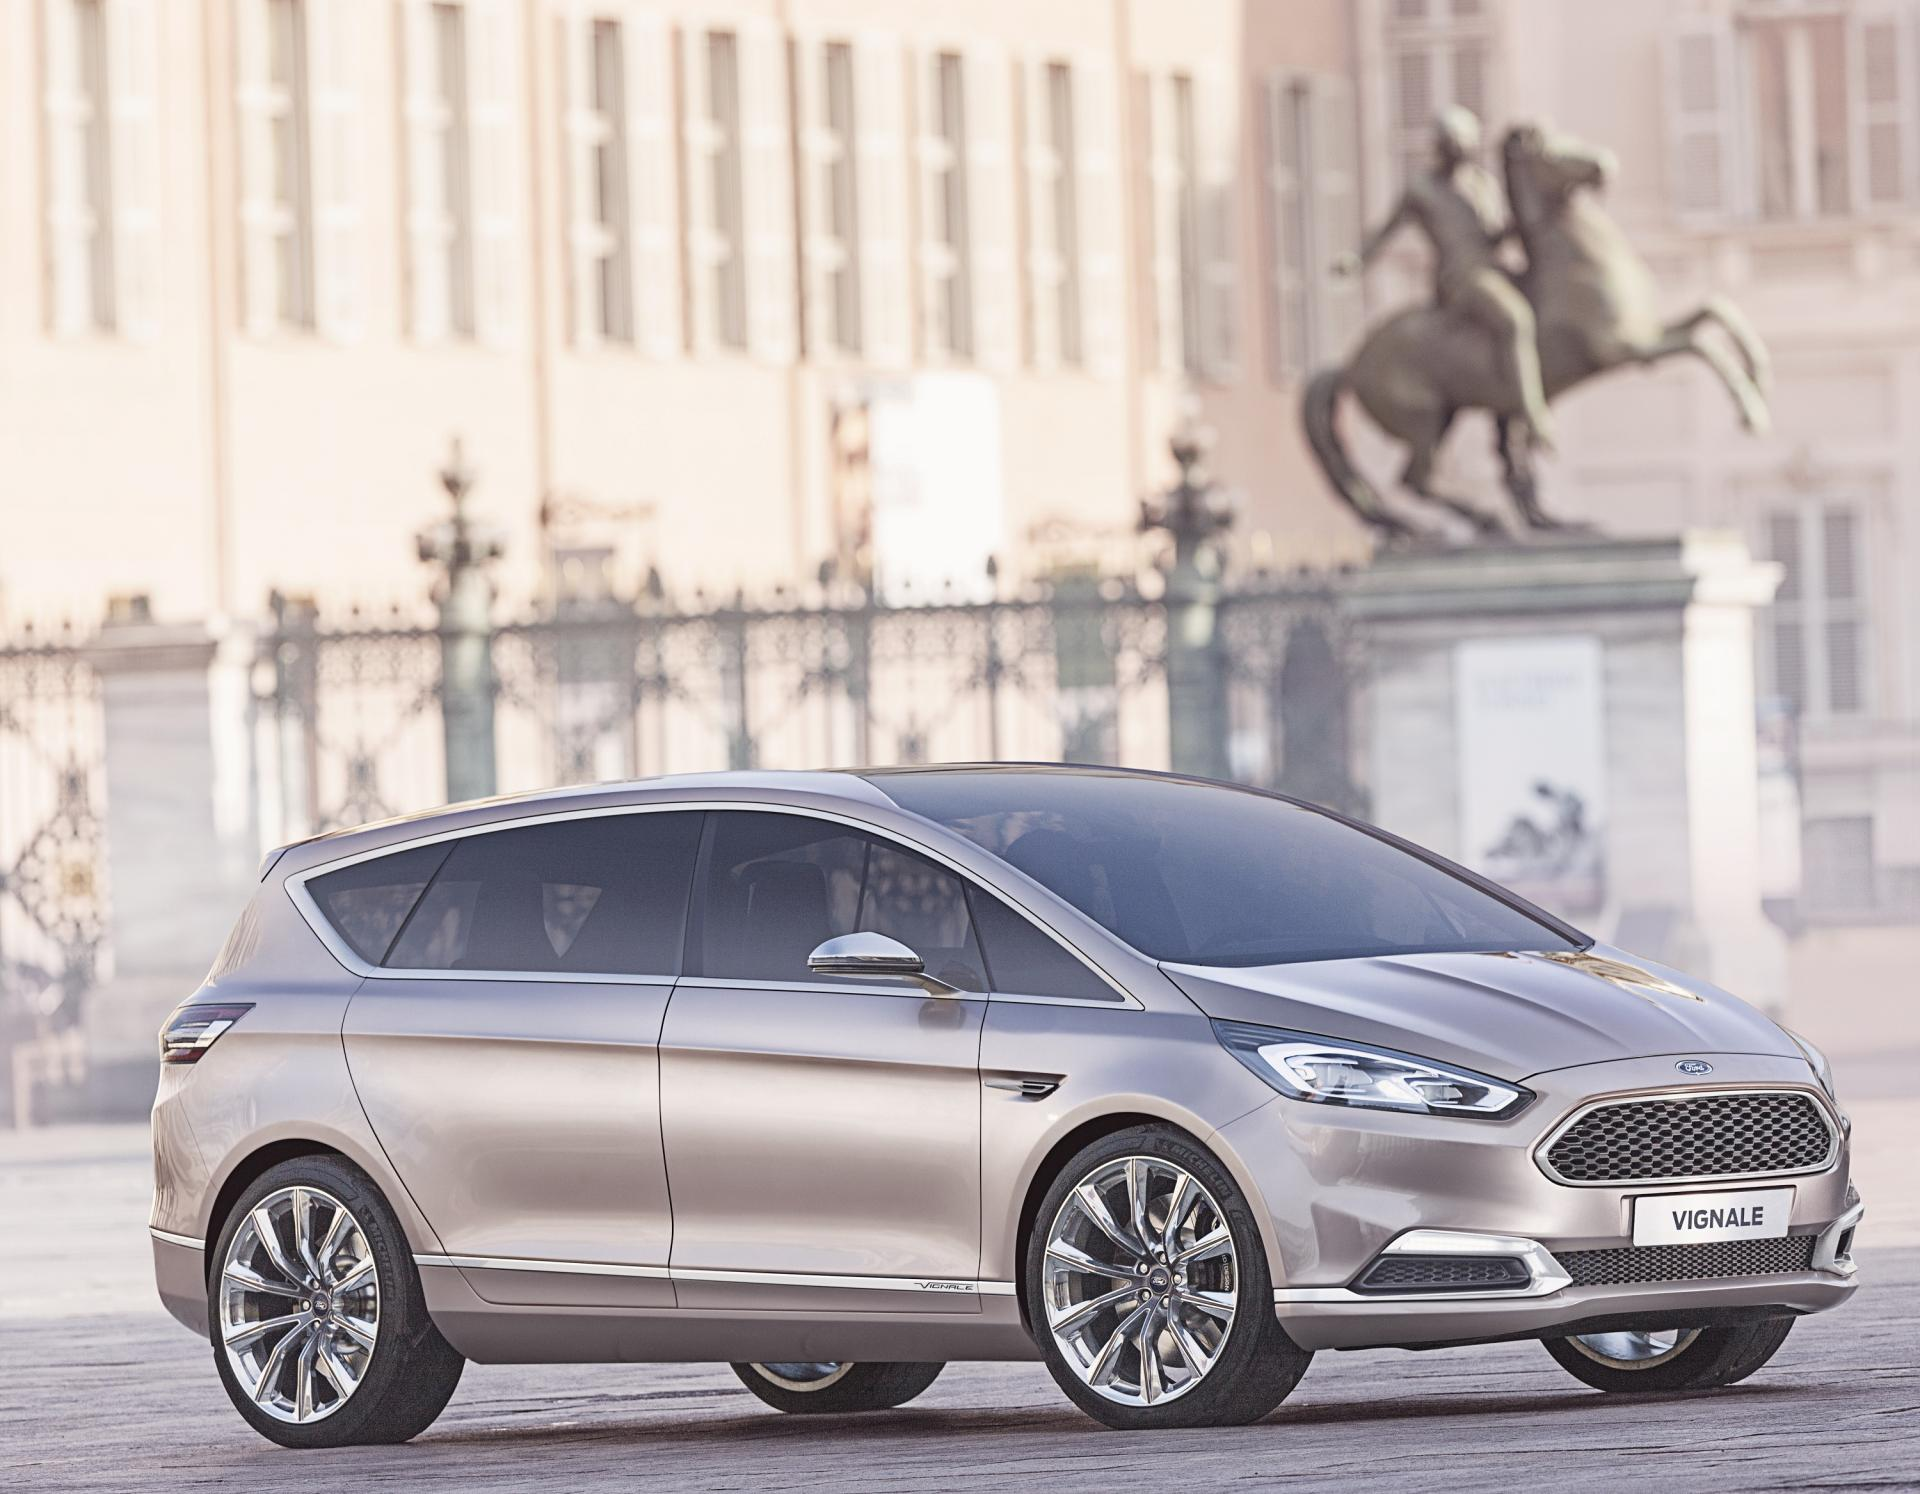 2014 ford s max vignale concept pictures news research. Black Bedroom Furniture Sets. Home Design Ideas